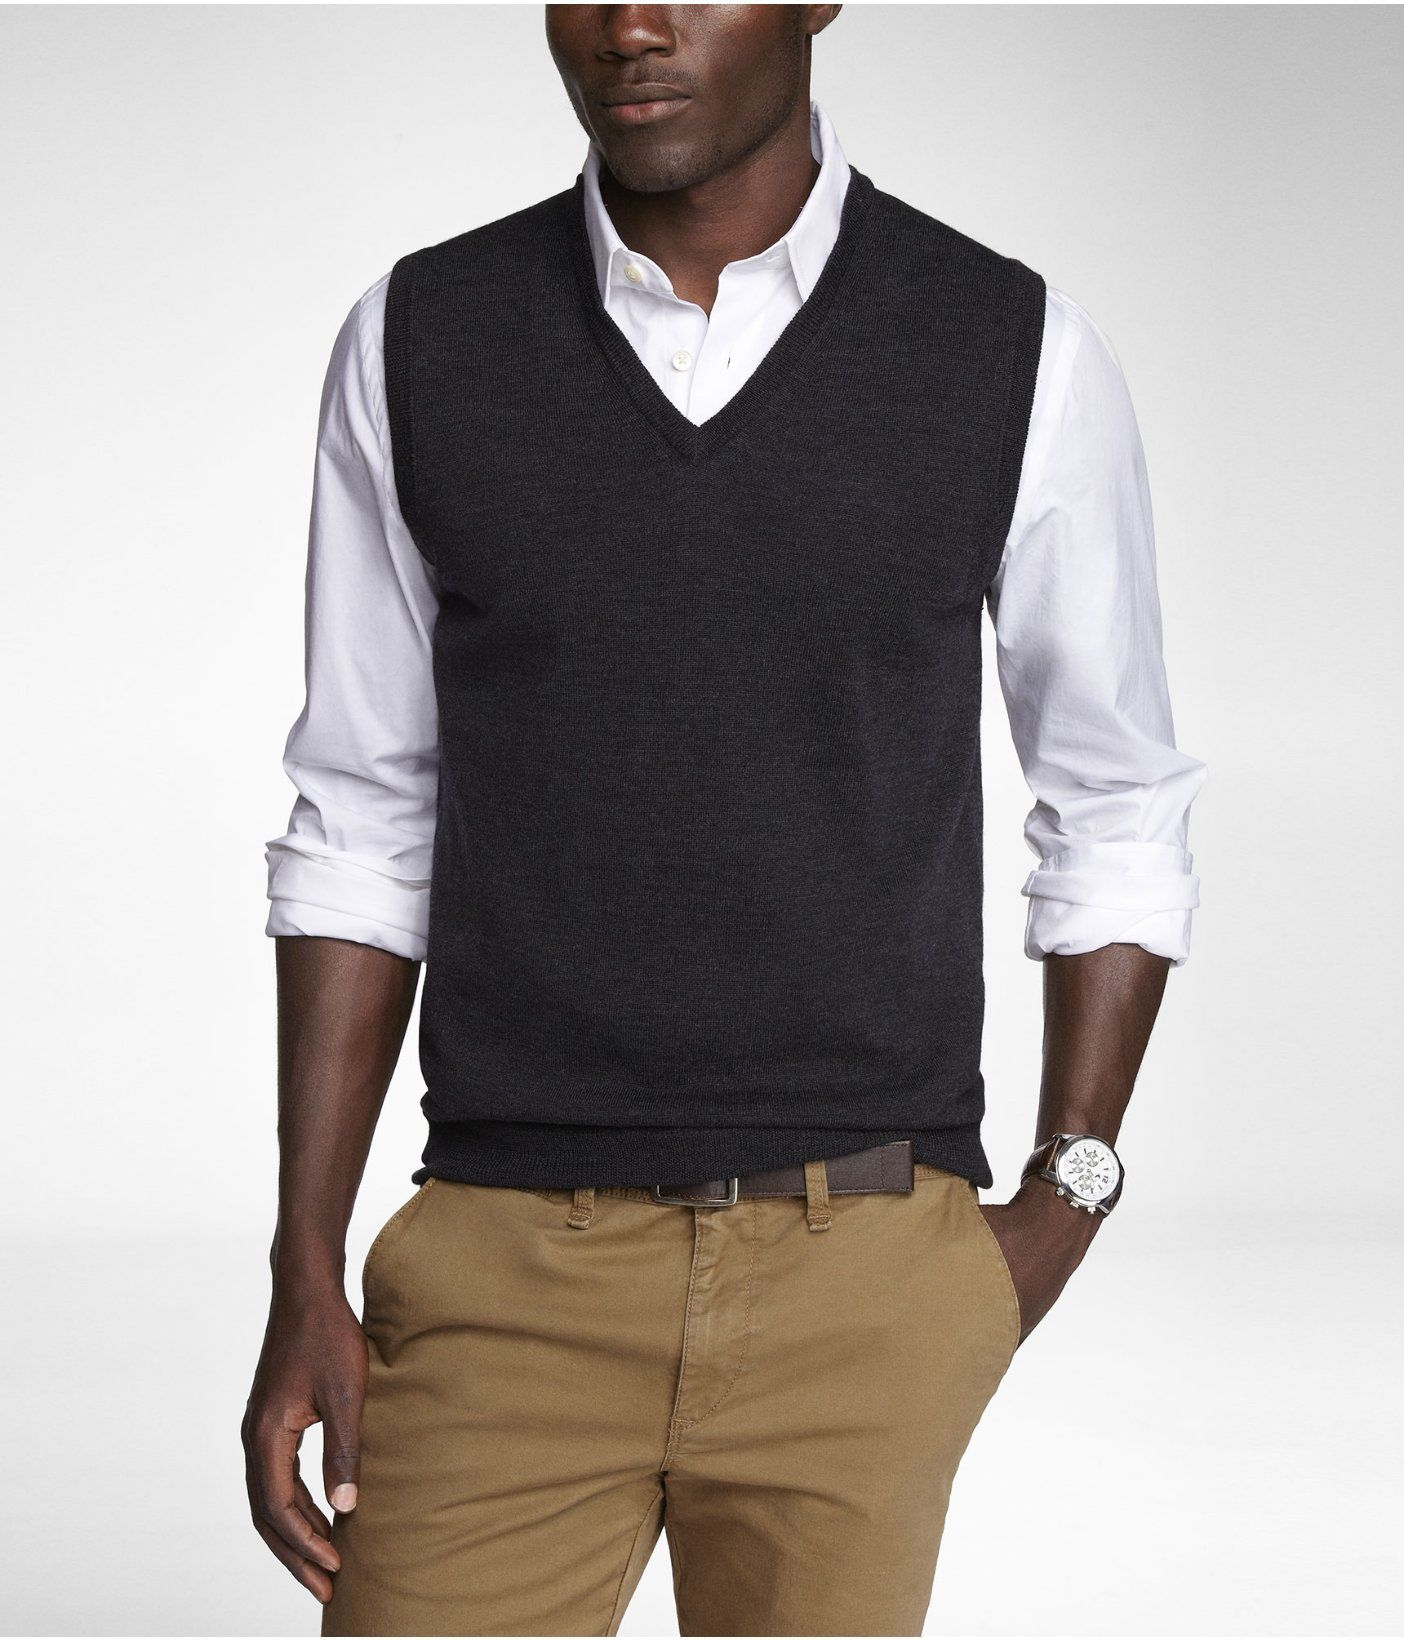 MERINO WOOL SWEATER VEST -- Charcoal -- S or XS | Work Attire ...